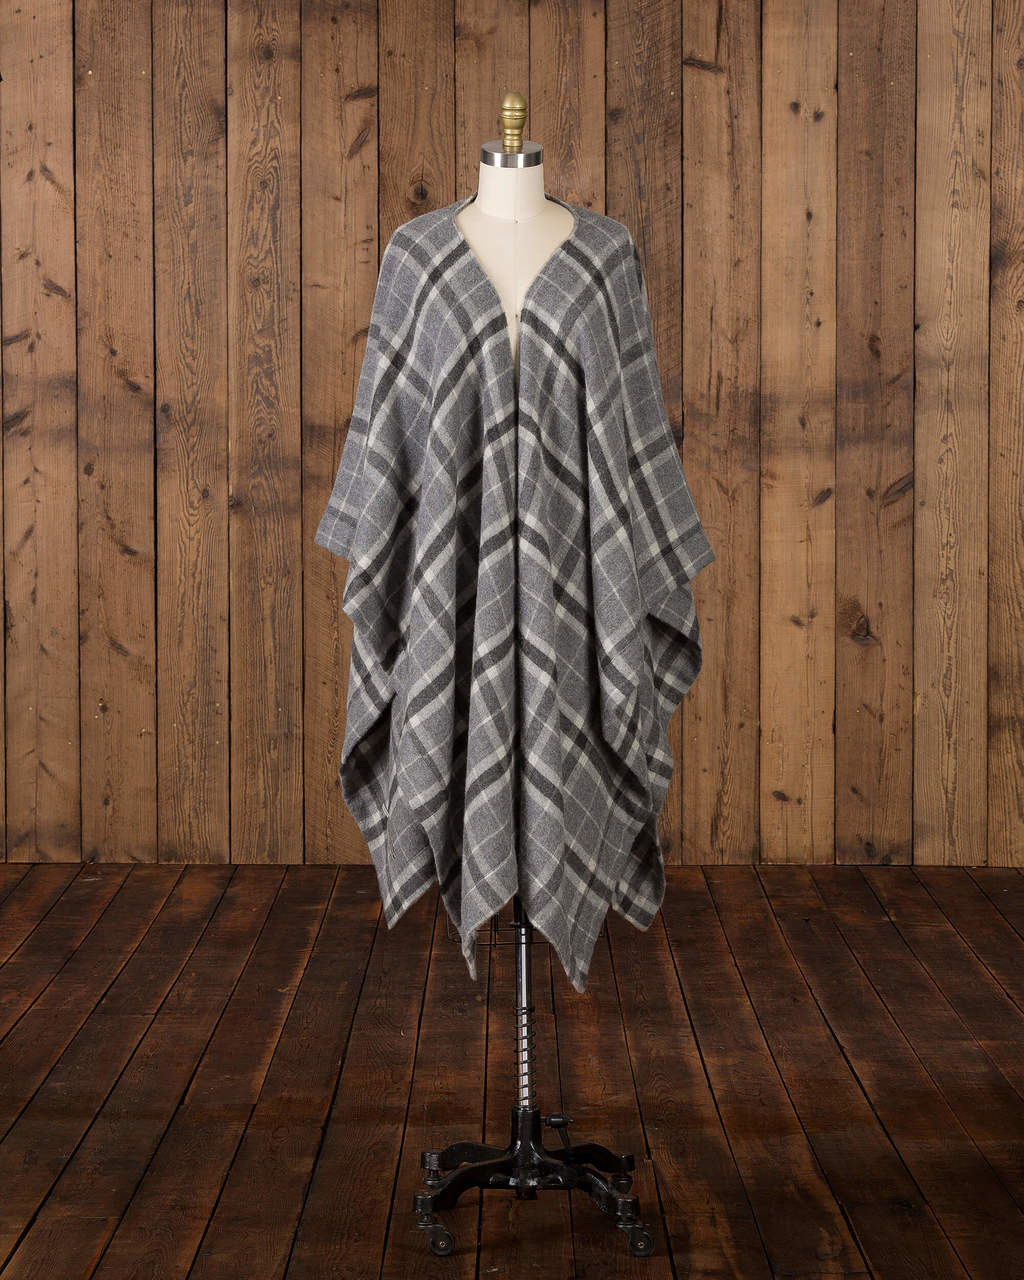 Alicia Adams Alpaca Aberdeen alpaca cape, alpaca cape, women's plaid alpaca cape, plaid alpaca poncho, dark grey and charcoal plaid Baby Alpaca Cape